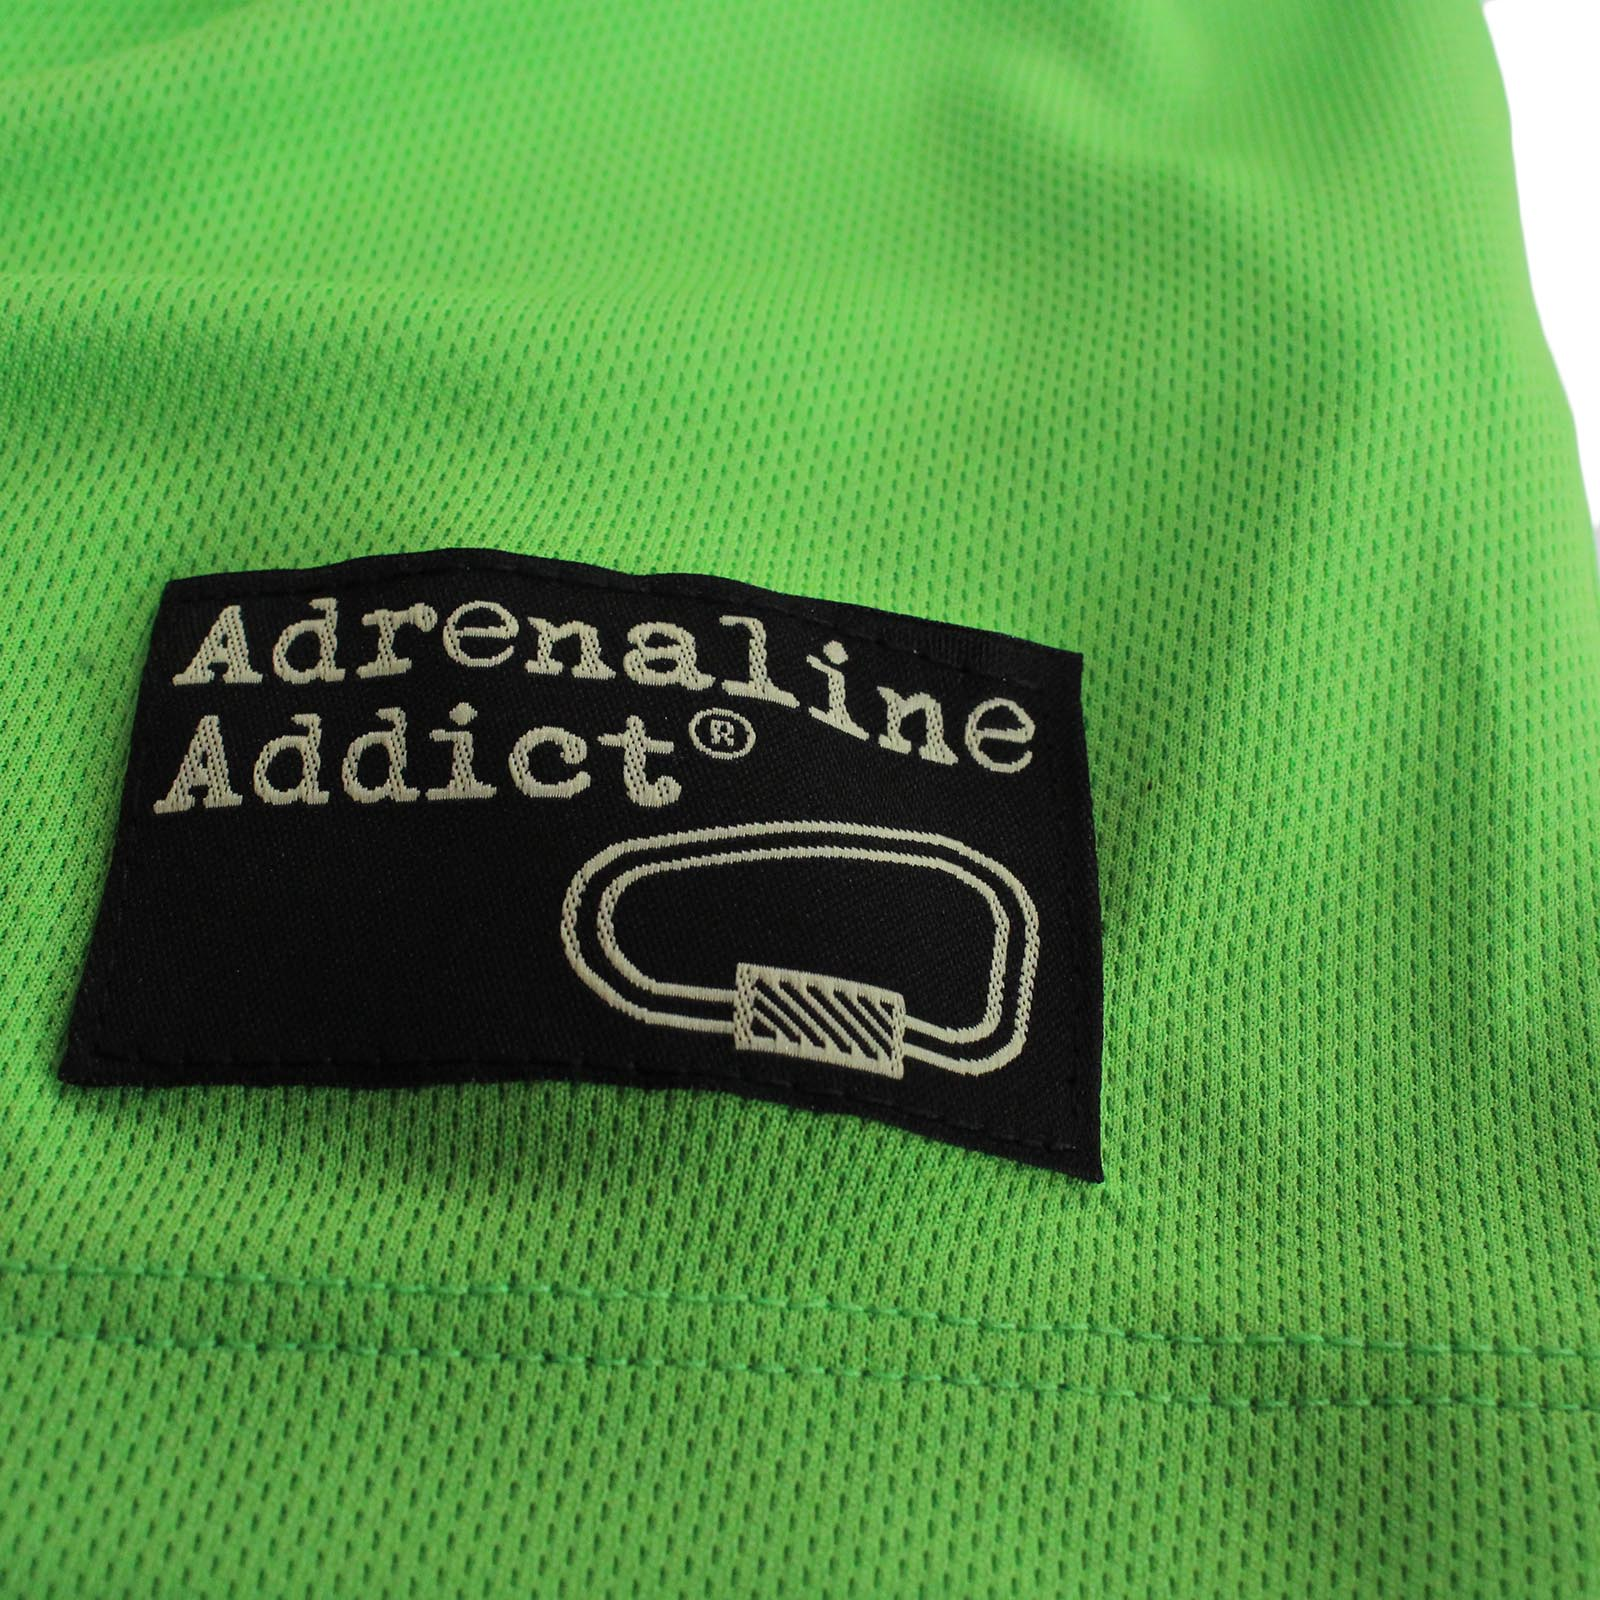 Adrenaline Addict Climbing Sun NECK T-SHIRT Dry Fit Breathable Sports V